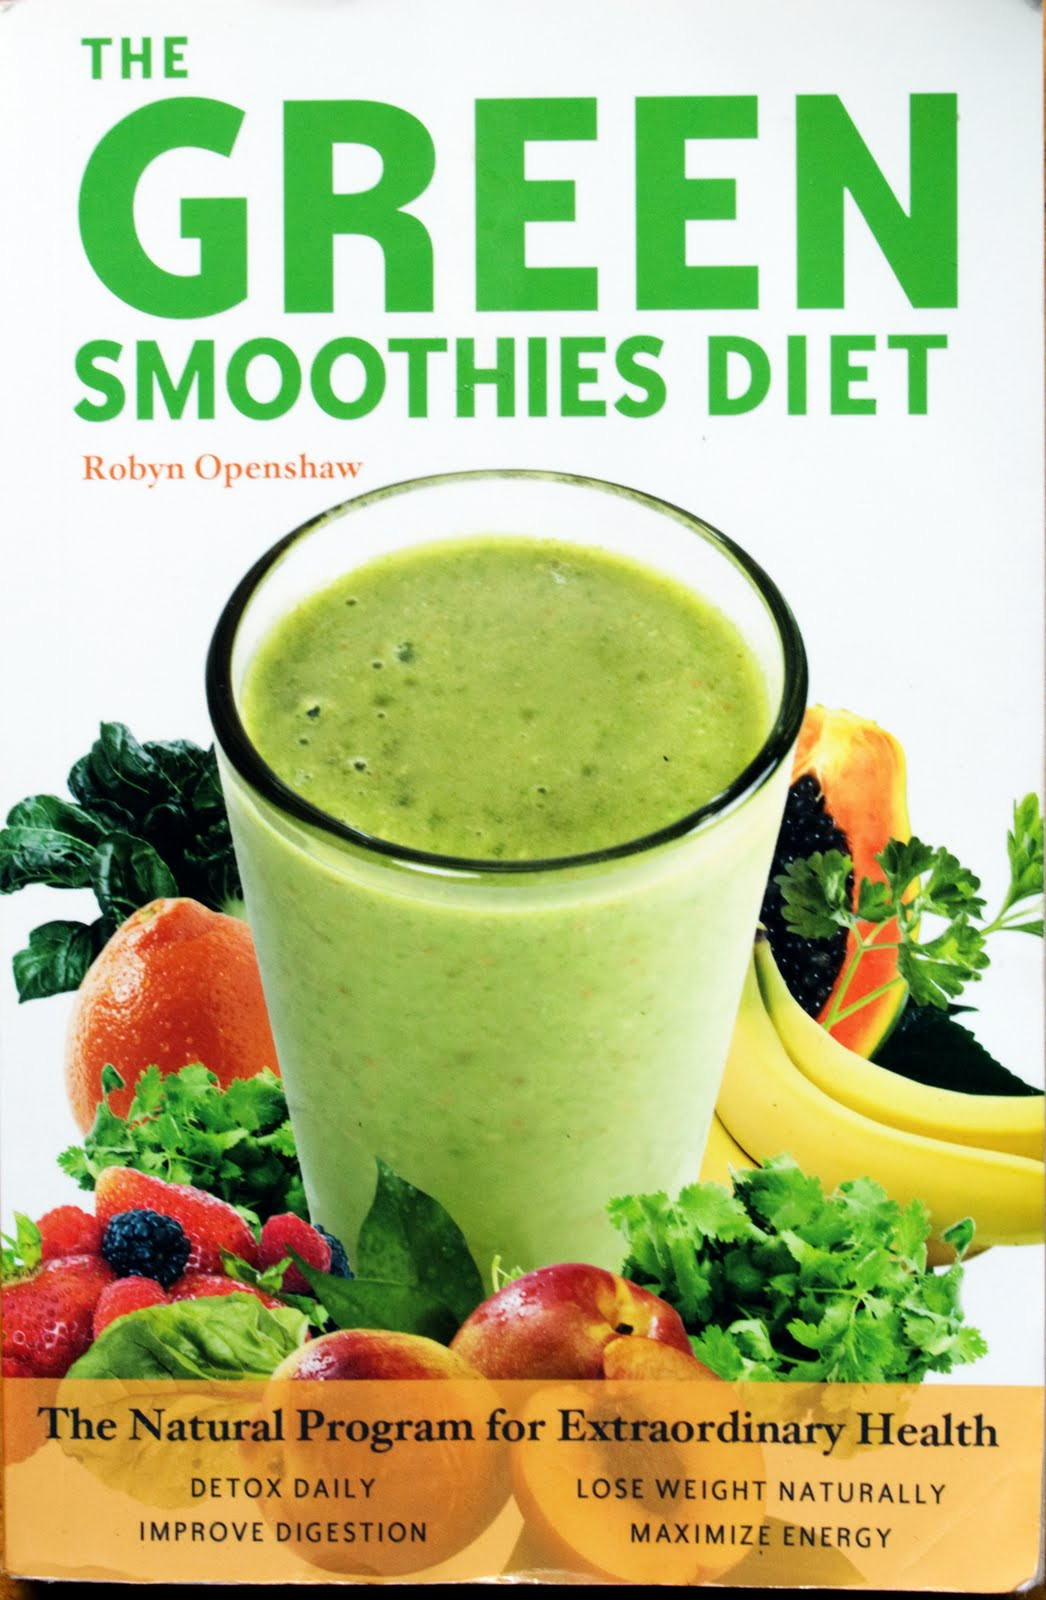 Healthy Diet Smoothies the Best Ideas for Anti Cancer Green Smoothie & Jane Dalton Story On Healthy